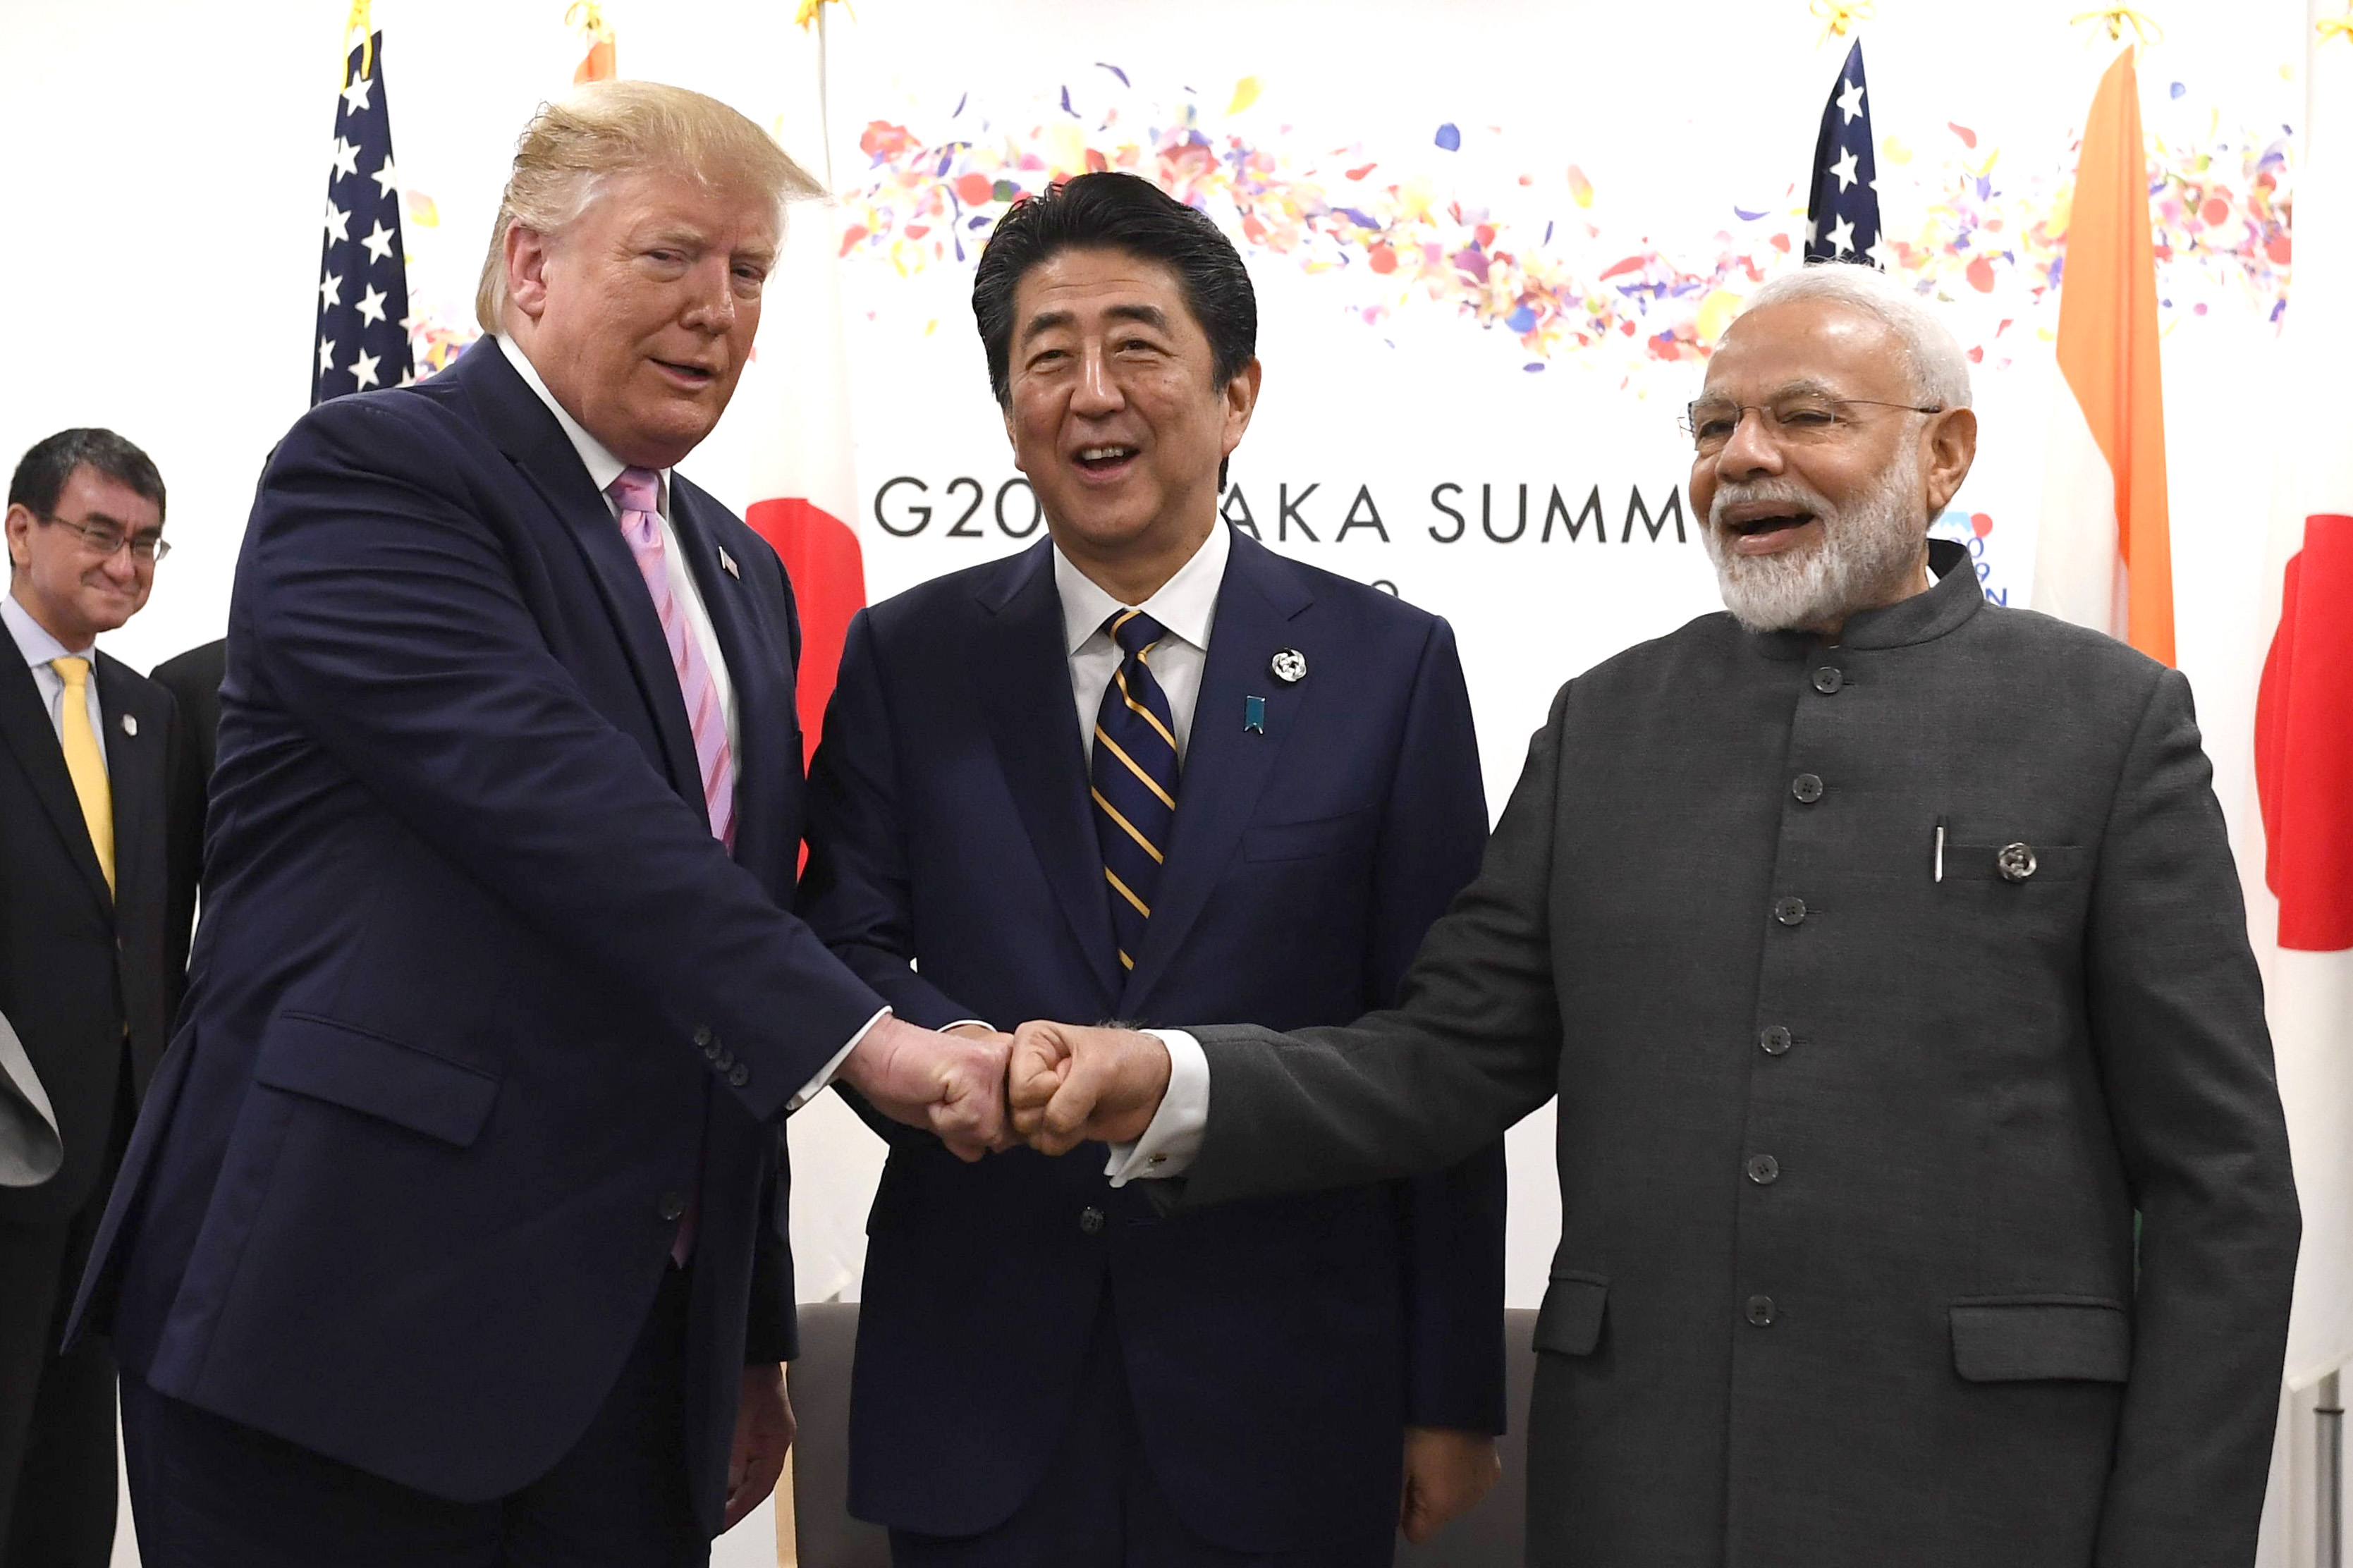 US President Donald Trump, Japanese Prime Minister Shinzo Abe, and Indian Prime Minister Narendra Modi share a fist bump at their trilateral meeting.